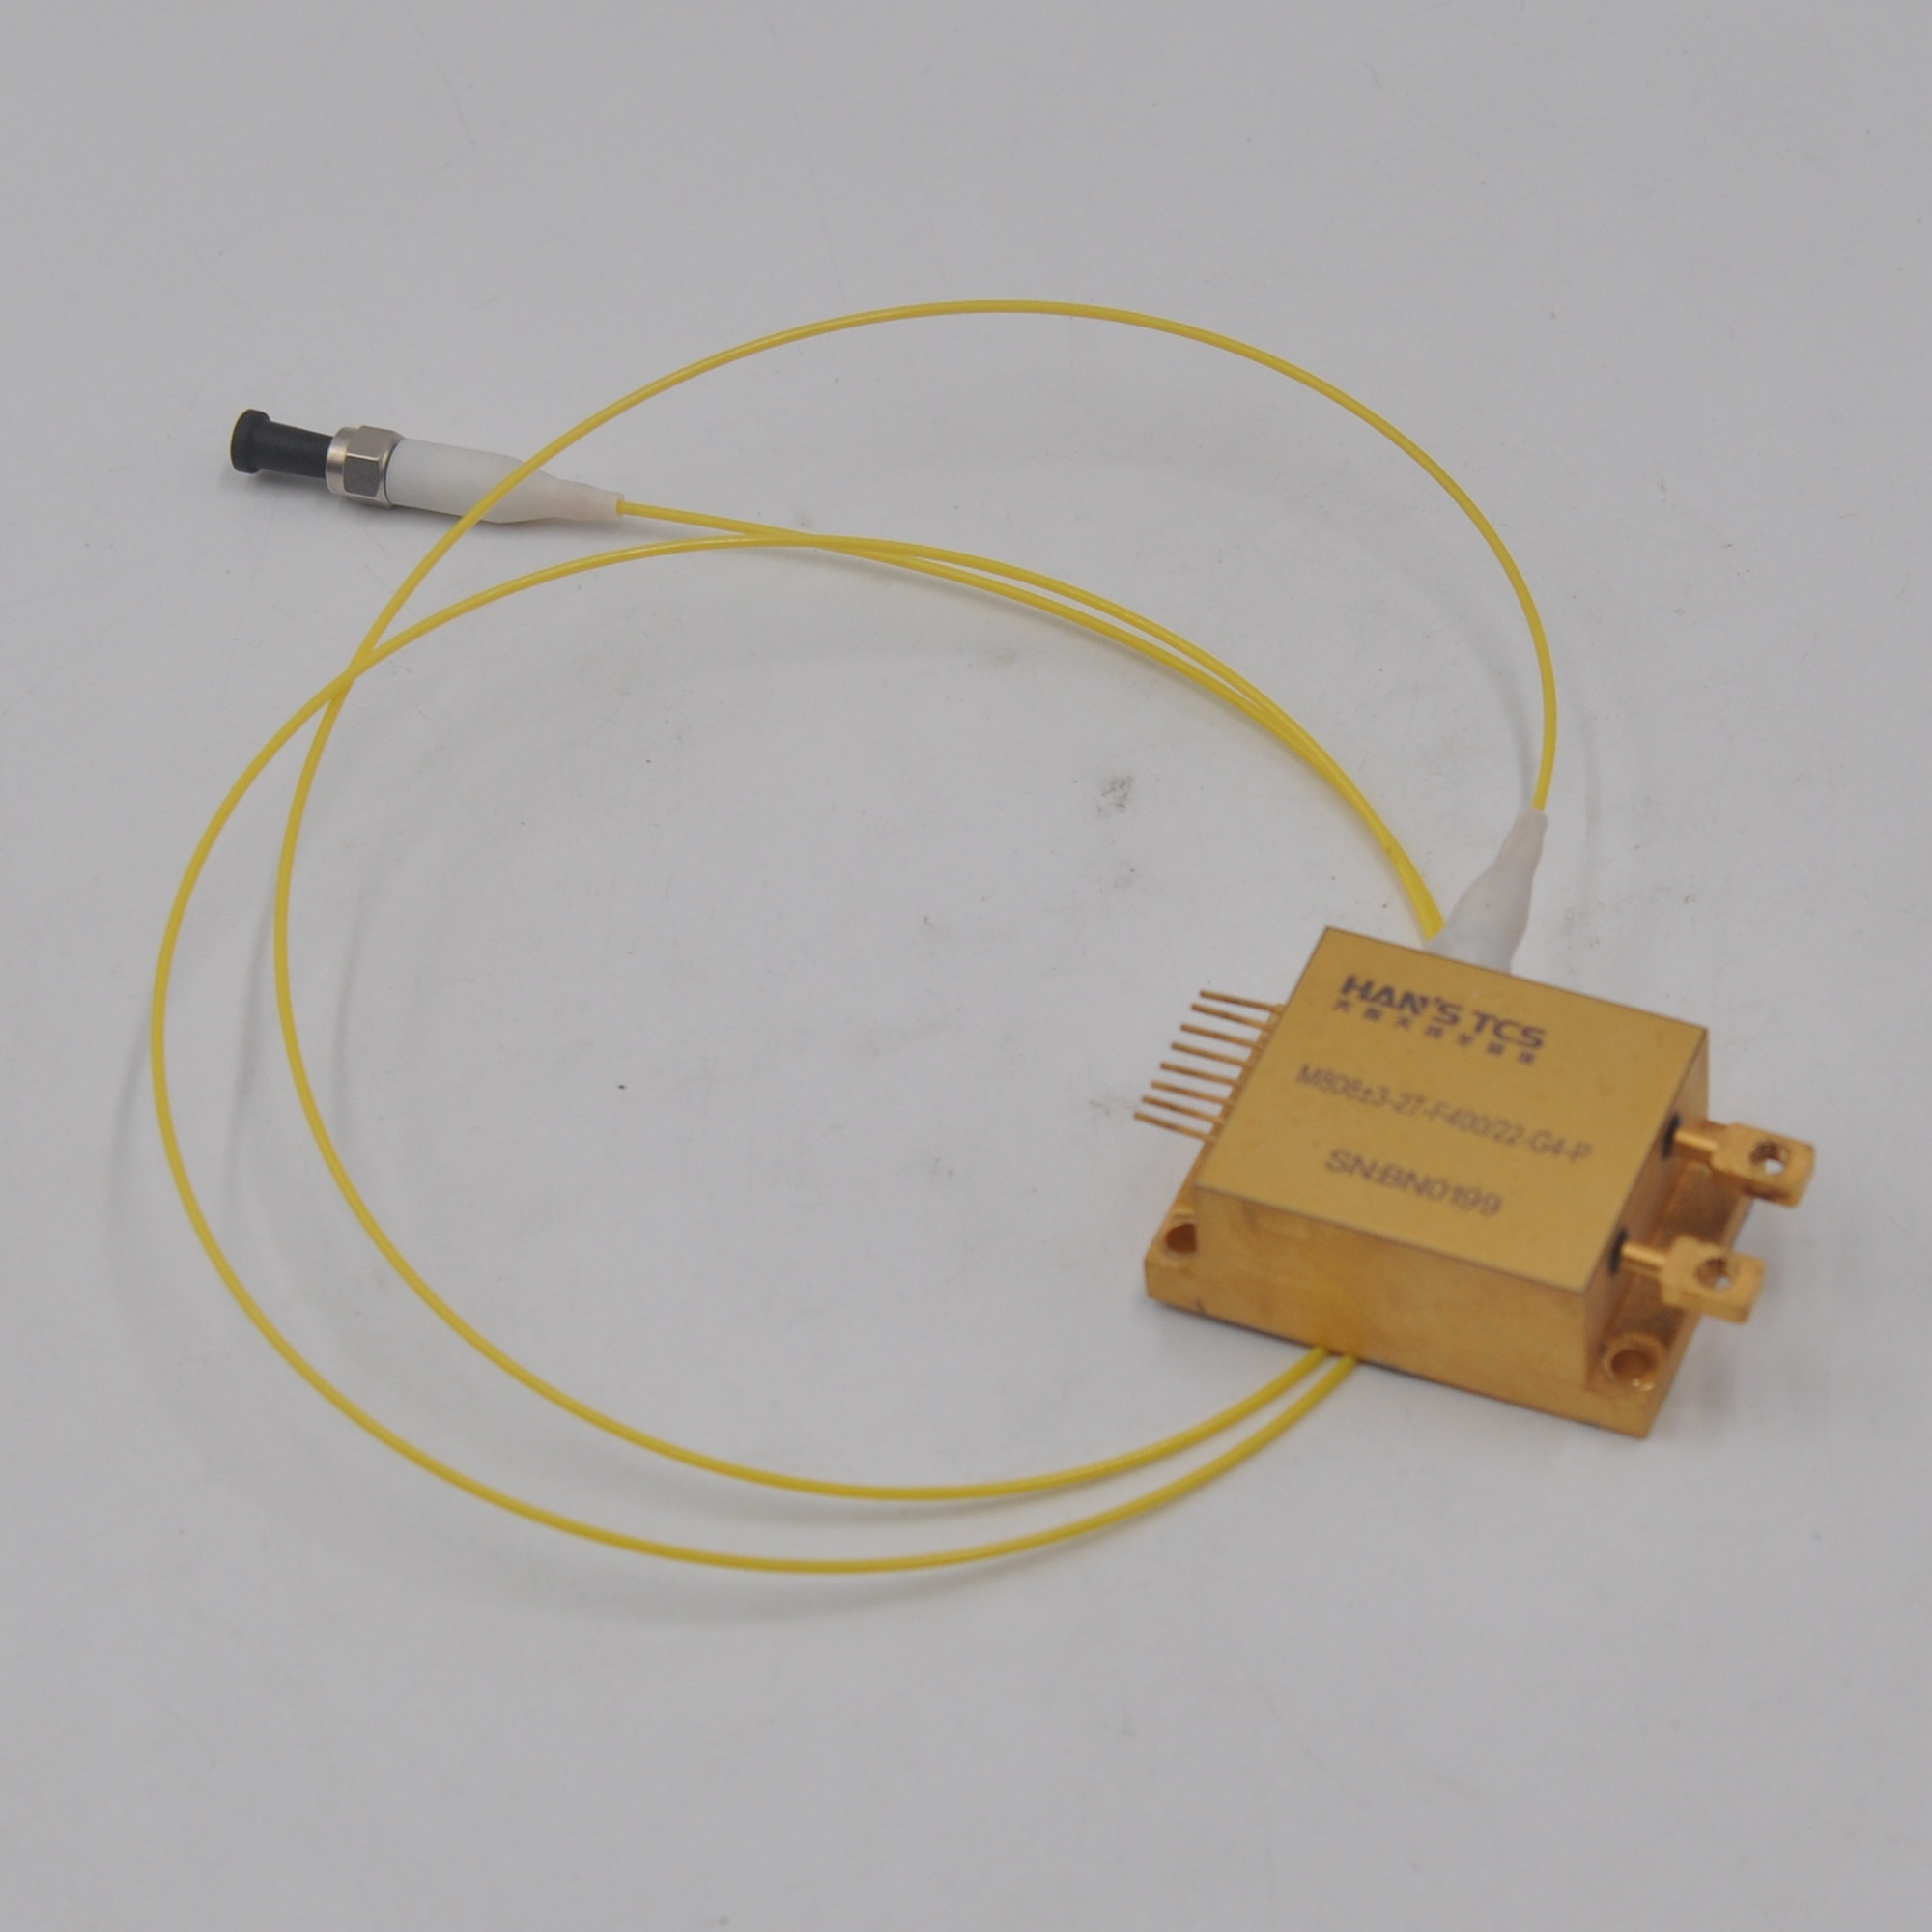 Semiconductor laser 27W HAN'S TCS M808 ± 3-27-F400 / 22-G4-P